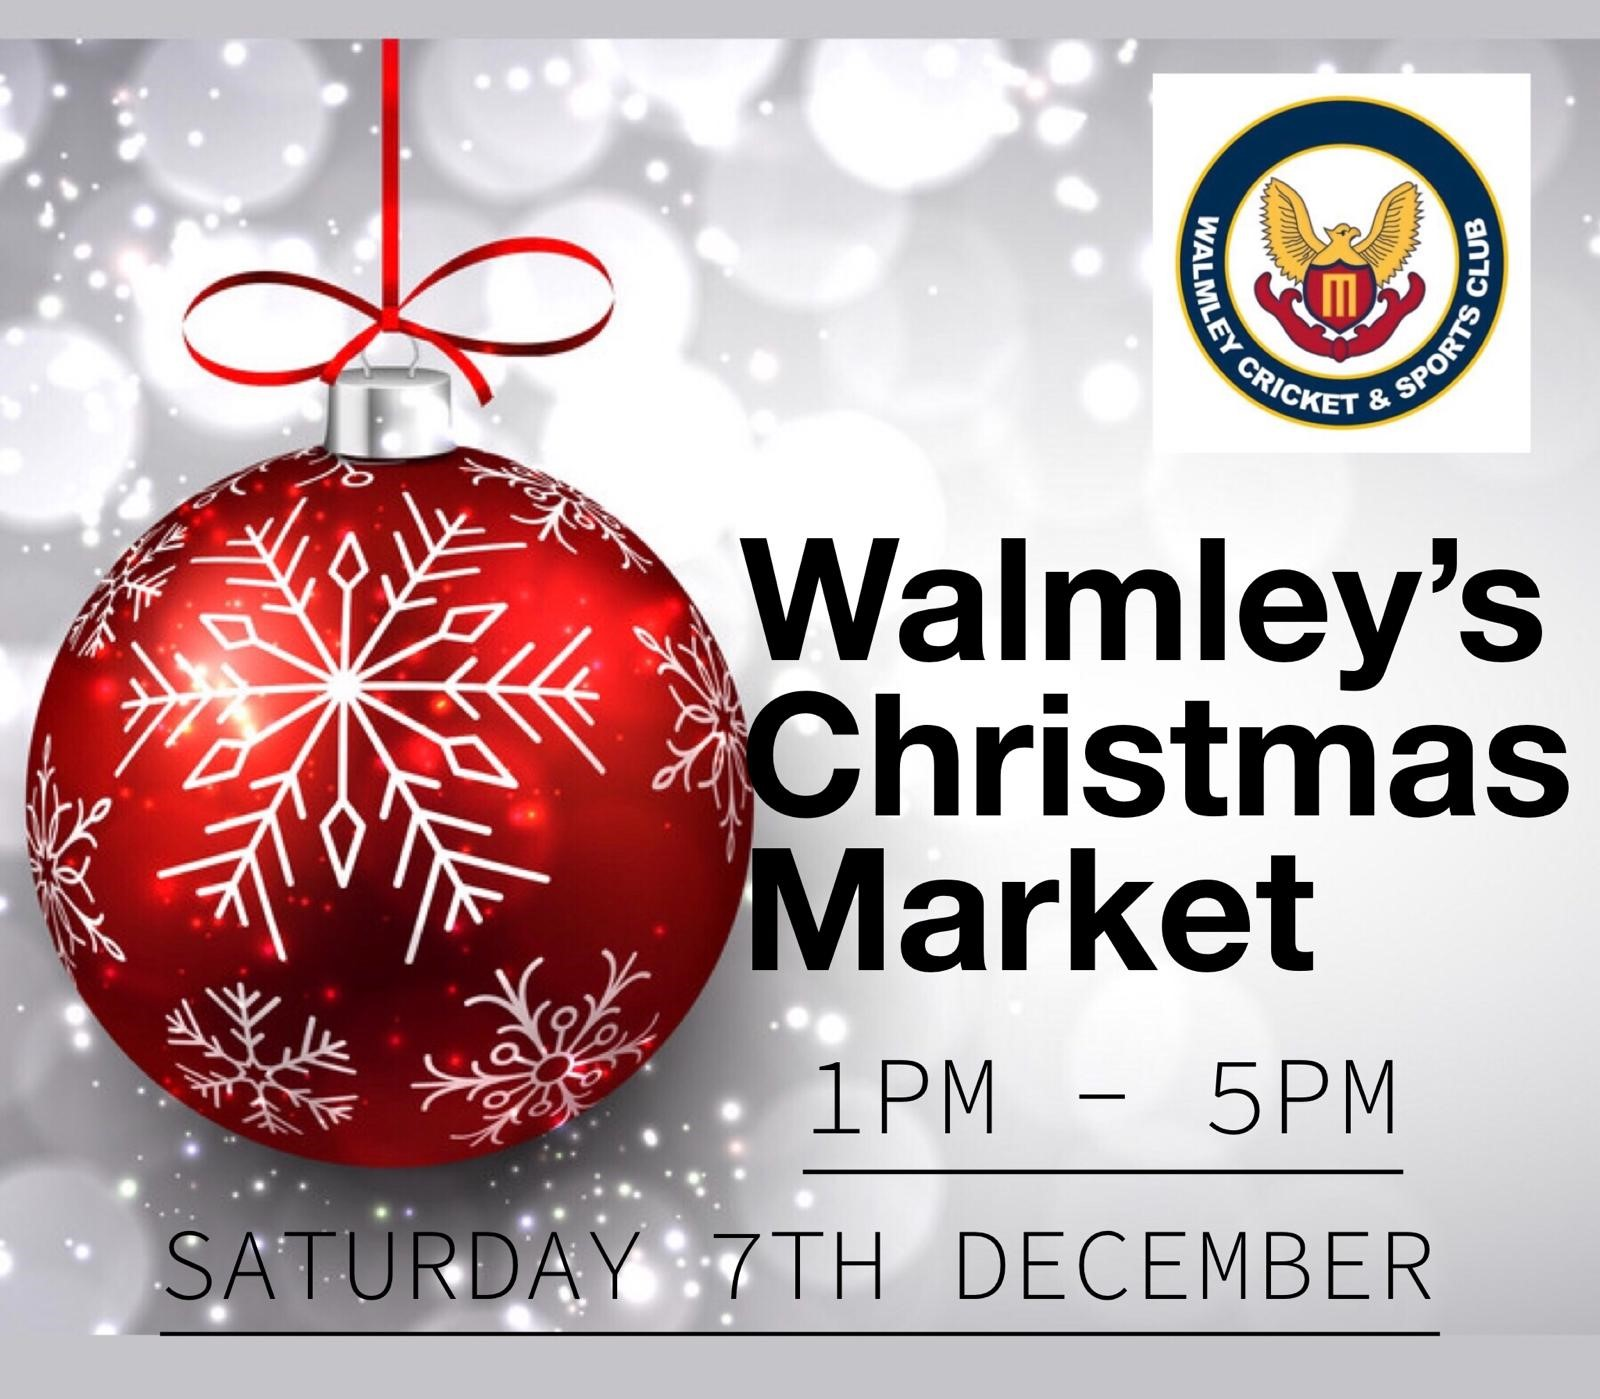 Walmley's Christmas Market 7th December